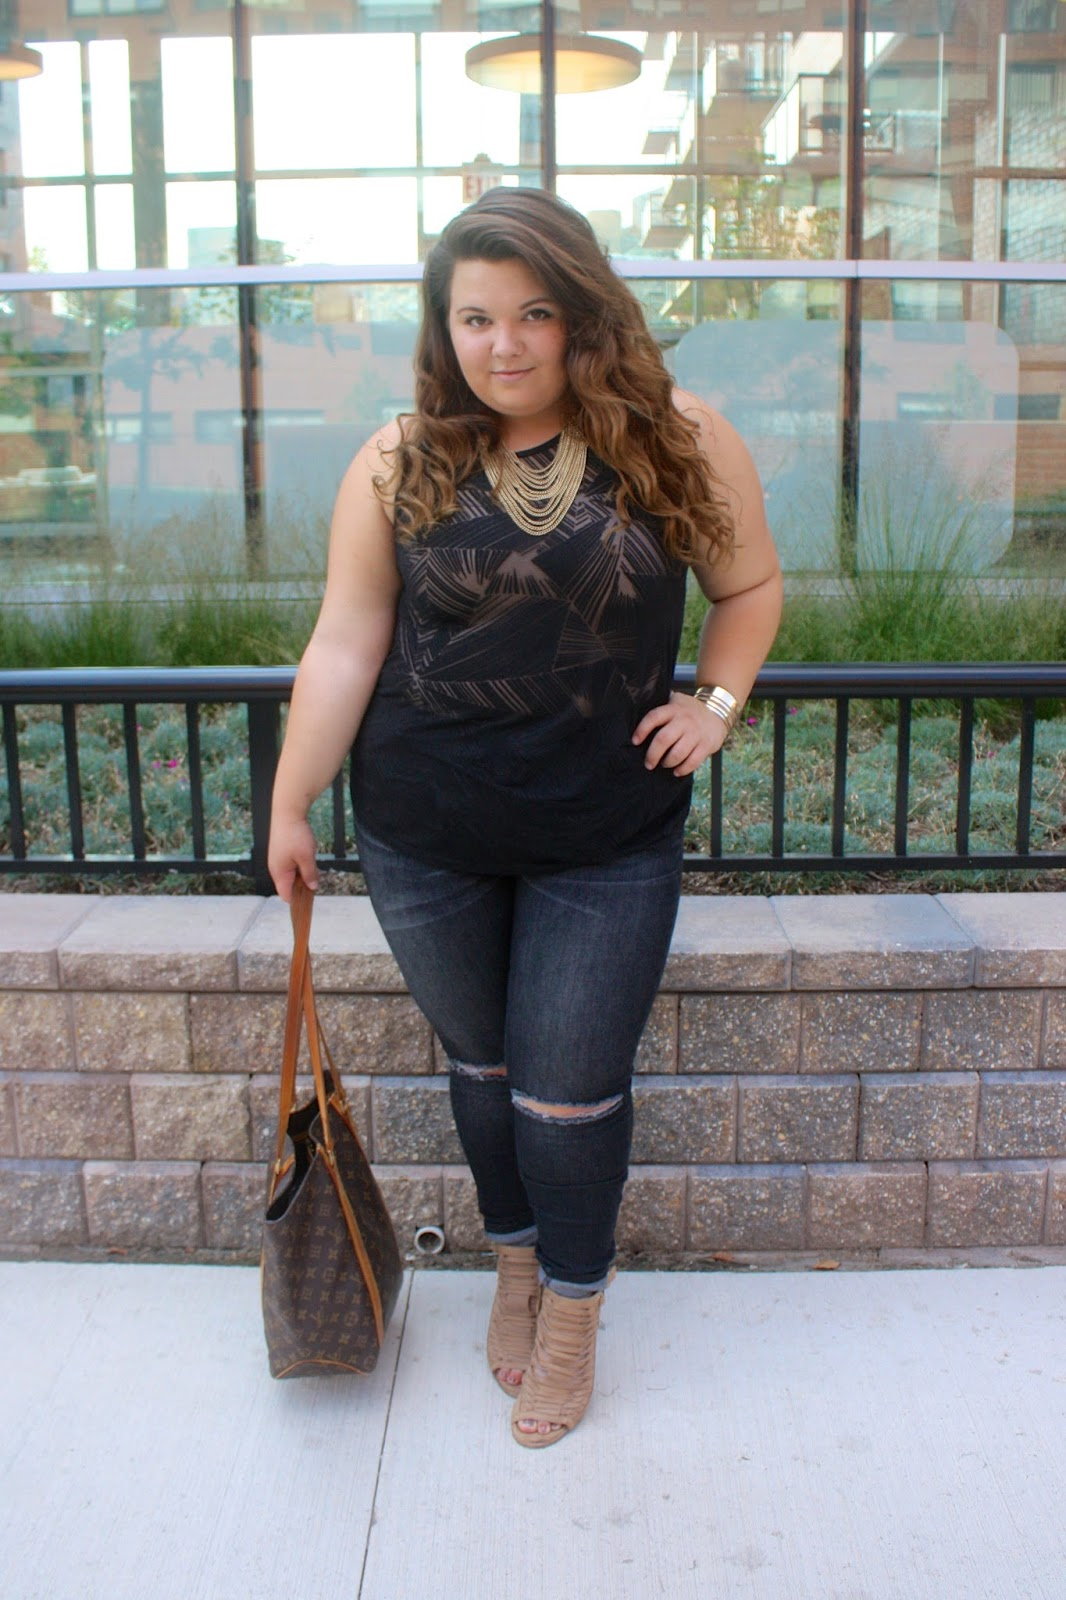 demi lovato, cool for the summer, Teen Vogue x parsons, teen vogue, fashion industry essentials, natalie craig, natalie in the city, plus size fashion, denim with holes, chicago, summer fashion, target denim, mossimo denim, sheer blouse, burnout tank top, louis vuitton tote, gold jewelry, denim with holes in the knees, curly ombre hair, ootsd, plus size fashion blogger, fashion blogger